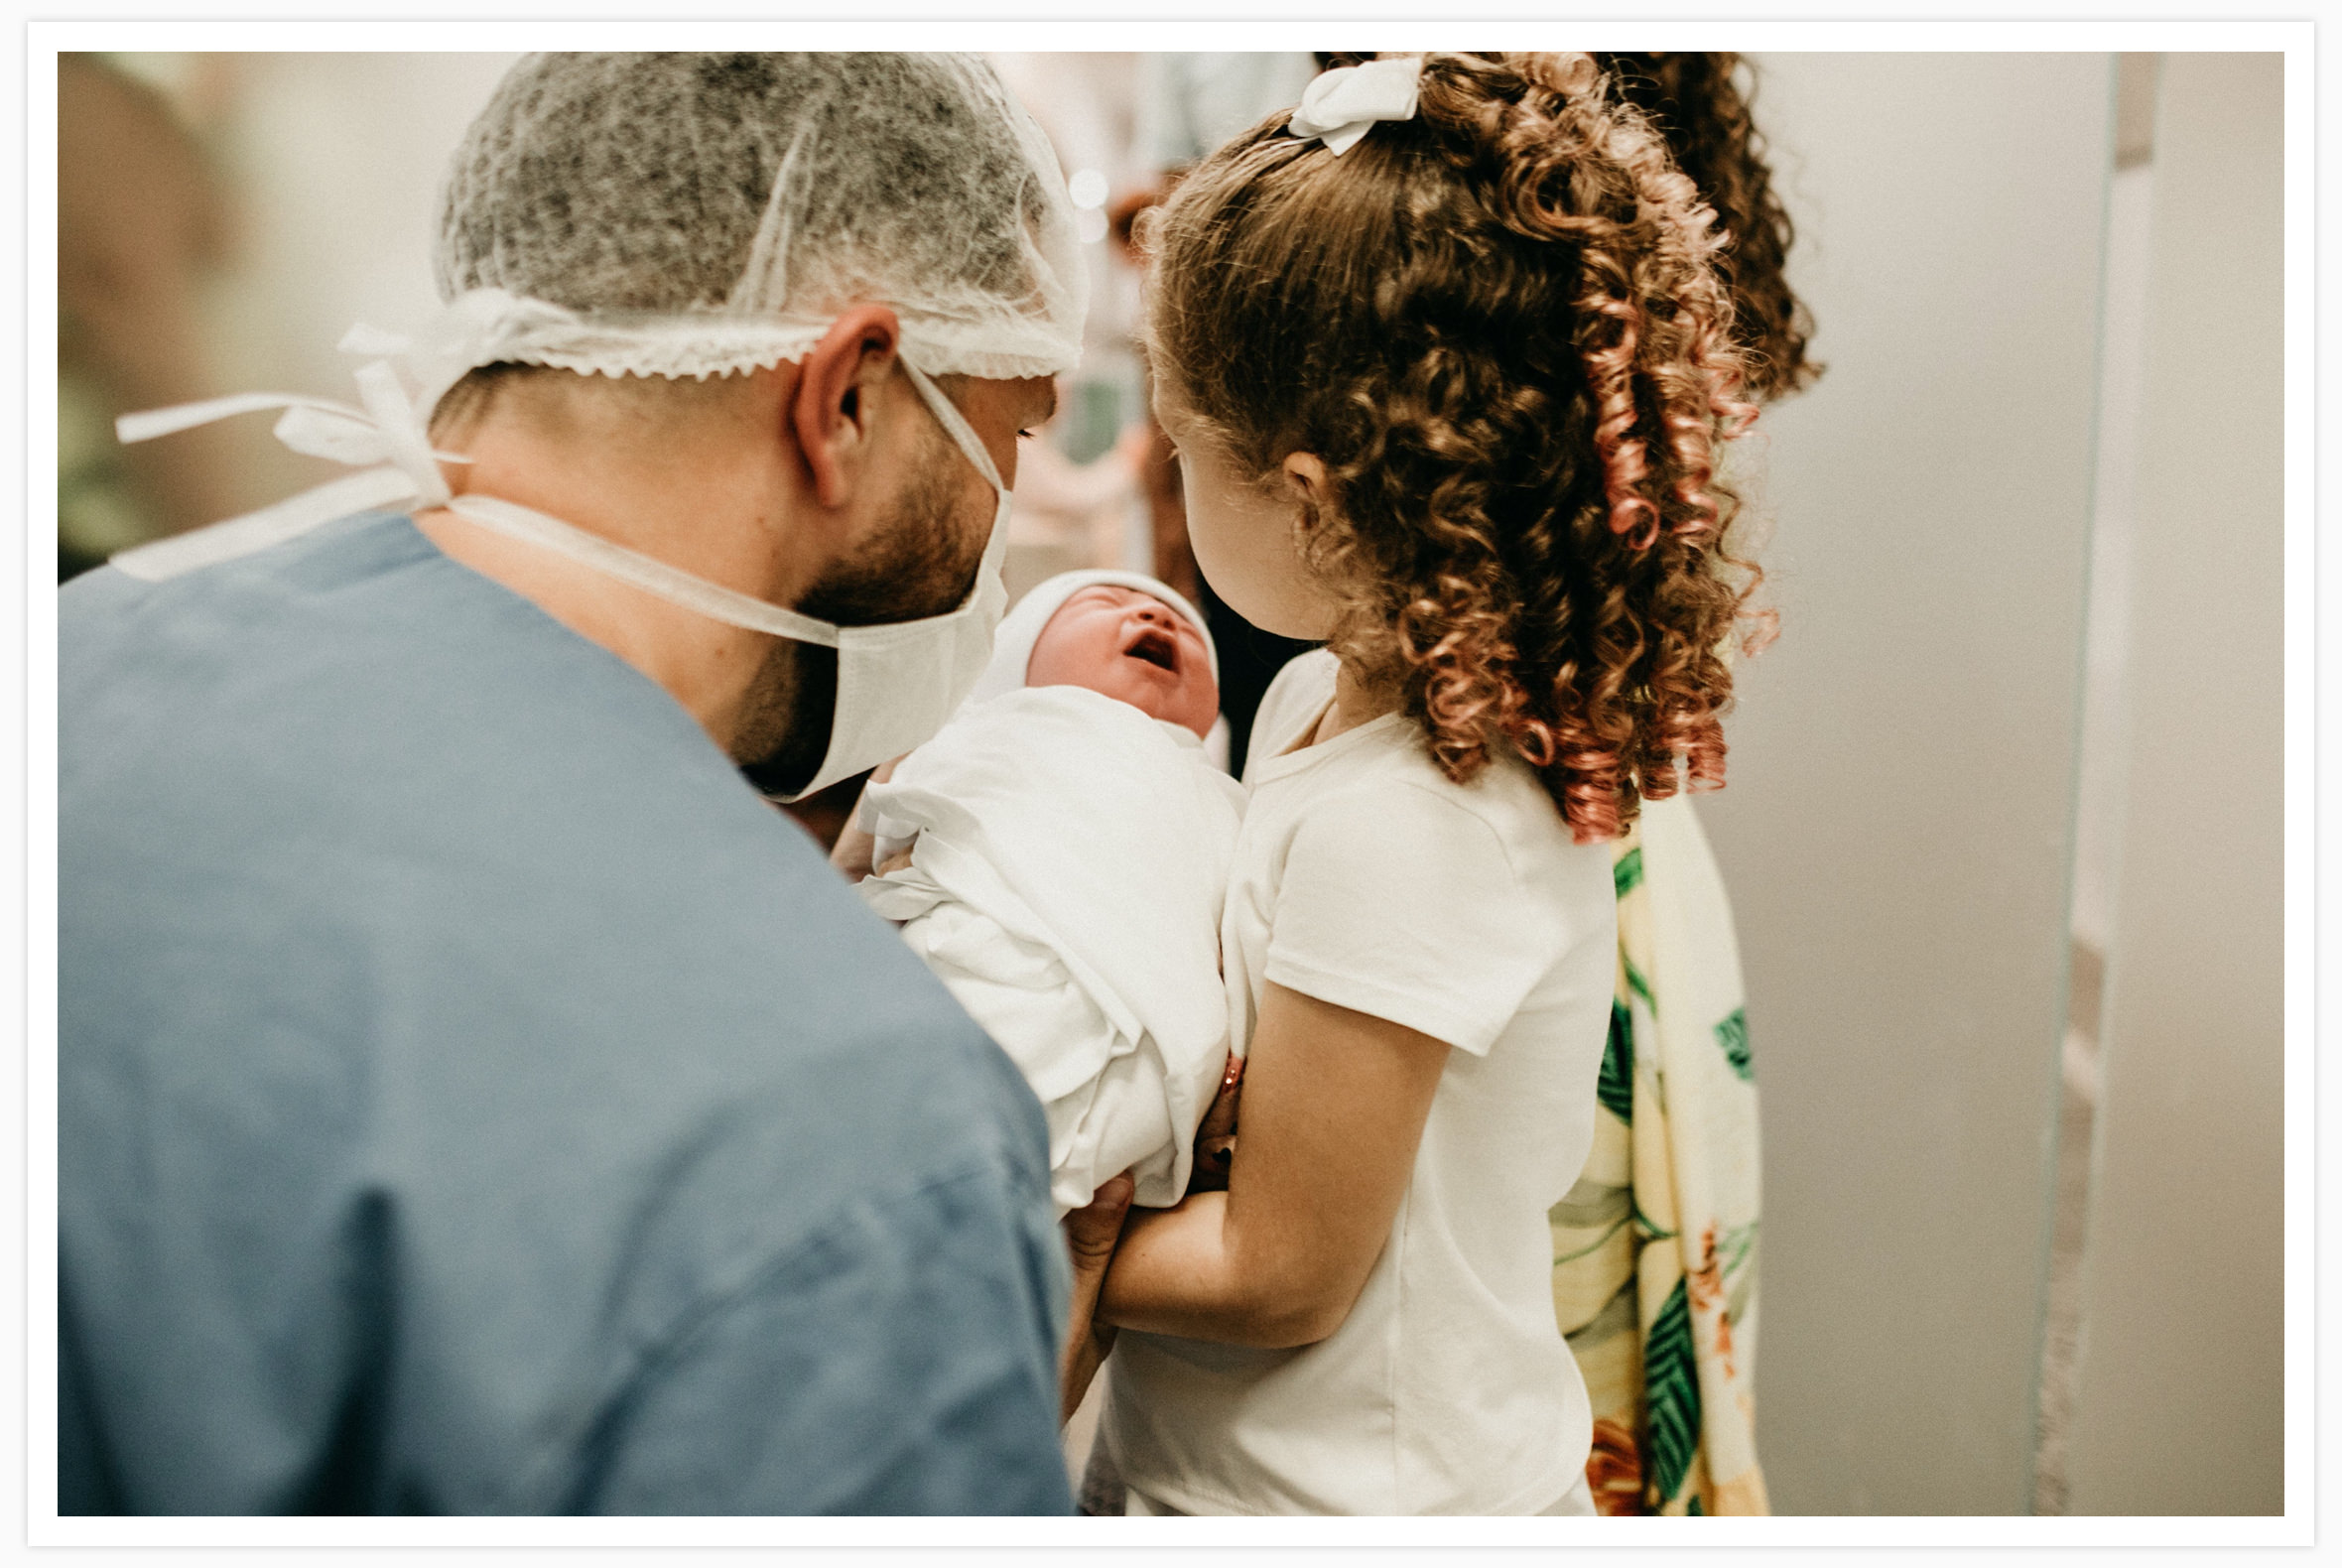 Dad and sister meet the new baby for the first time